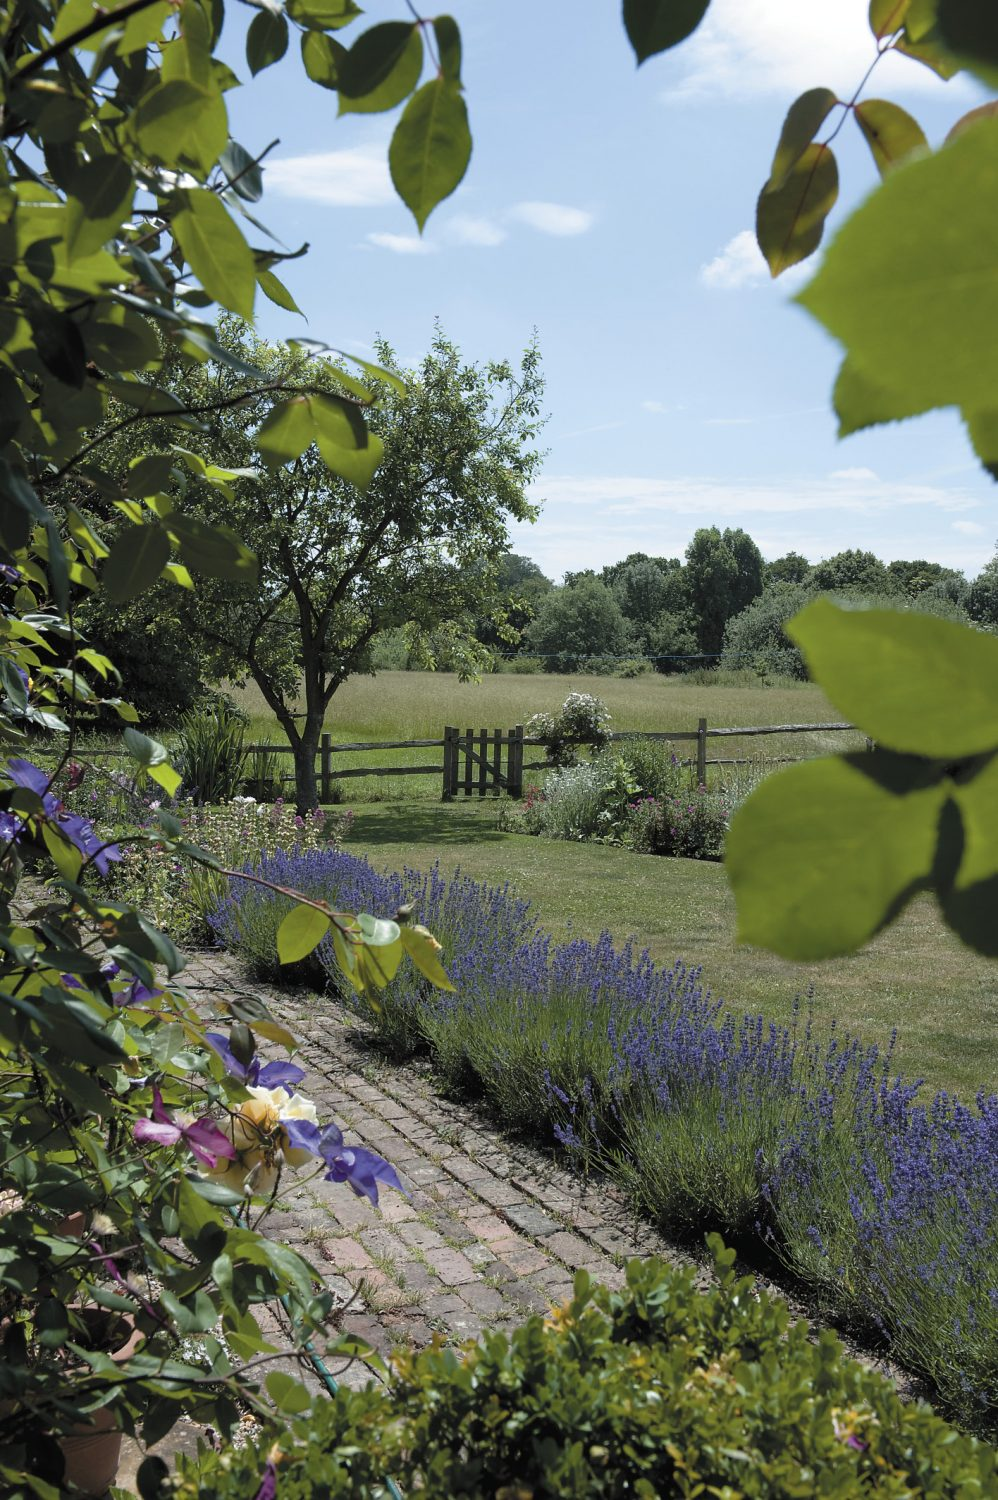 A lavender-edged brick path leads the eye towards the unspoilt meadow beyond